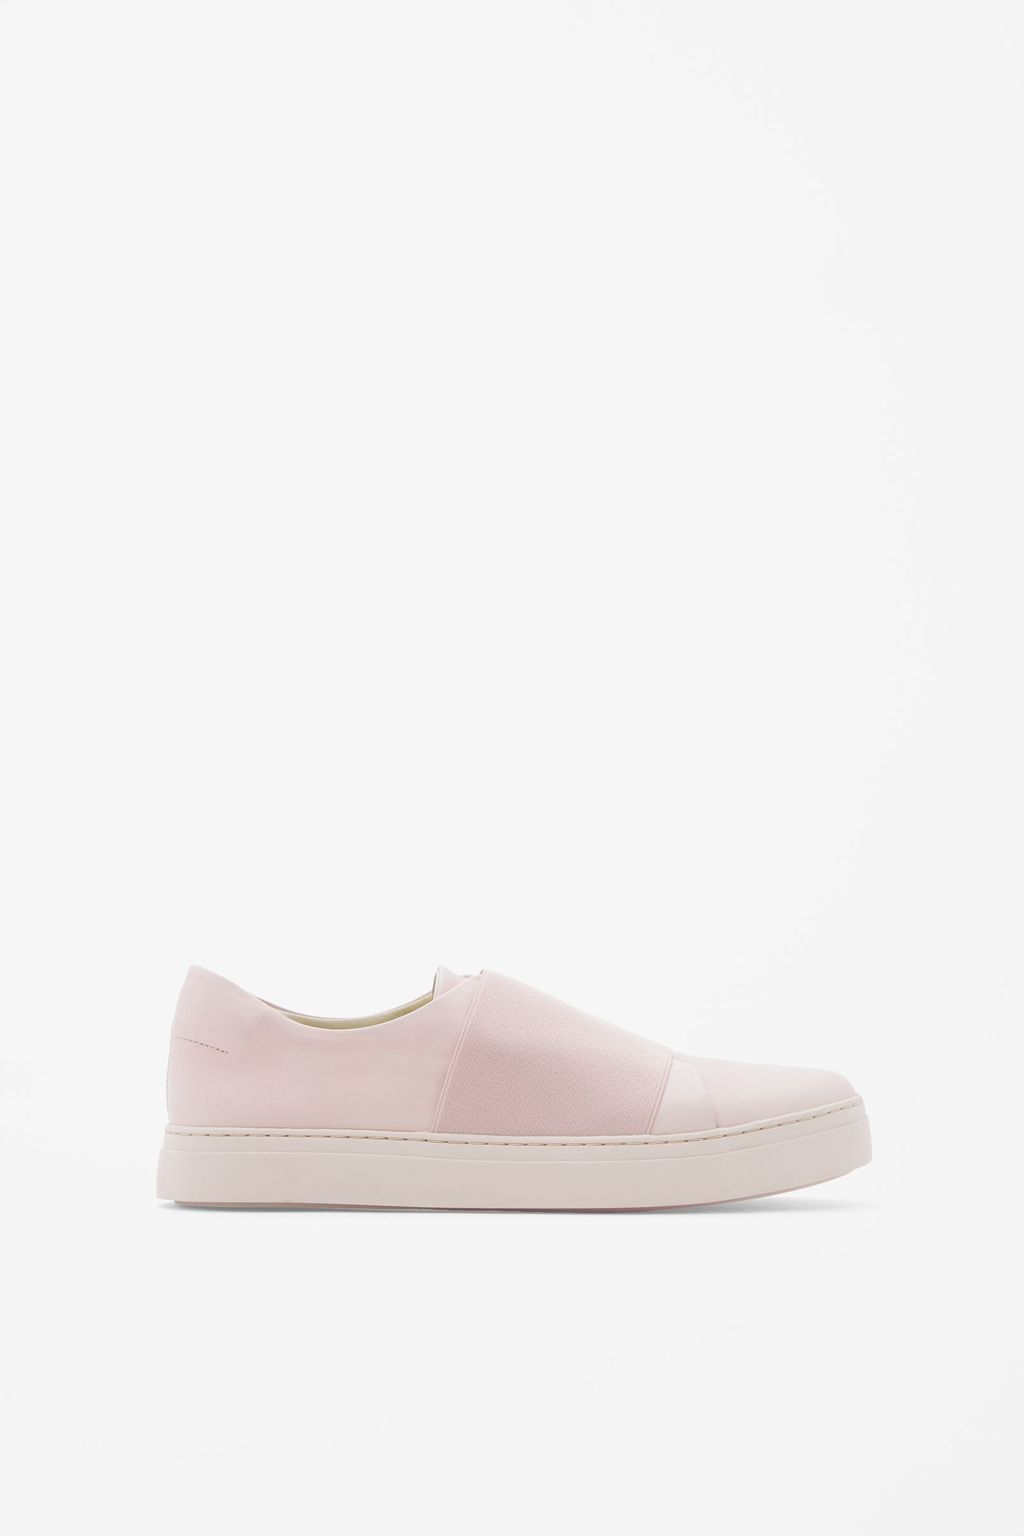 Wrap Over Leather Sneaker - predominant colour: blush; occasions: casual, holiday; material: leather; heel height: flat; toe: round toe; finish: plain; pattern: plain; style: skate shoes; season: s/s 2016; wardrobe: basic